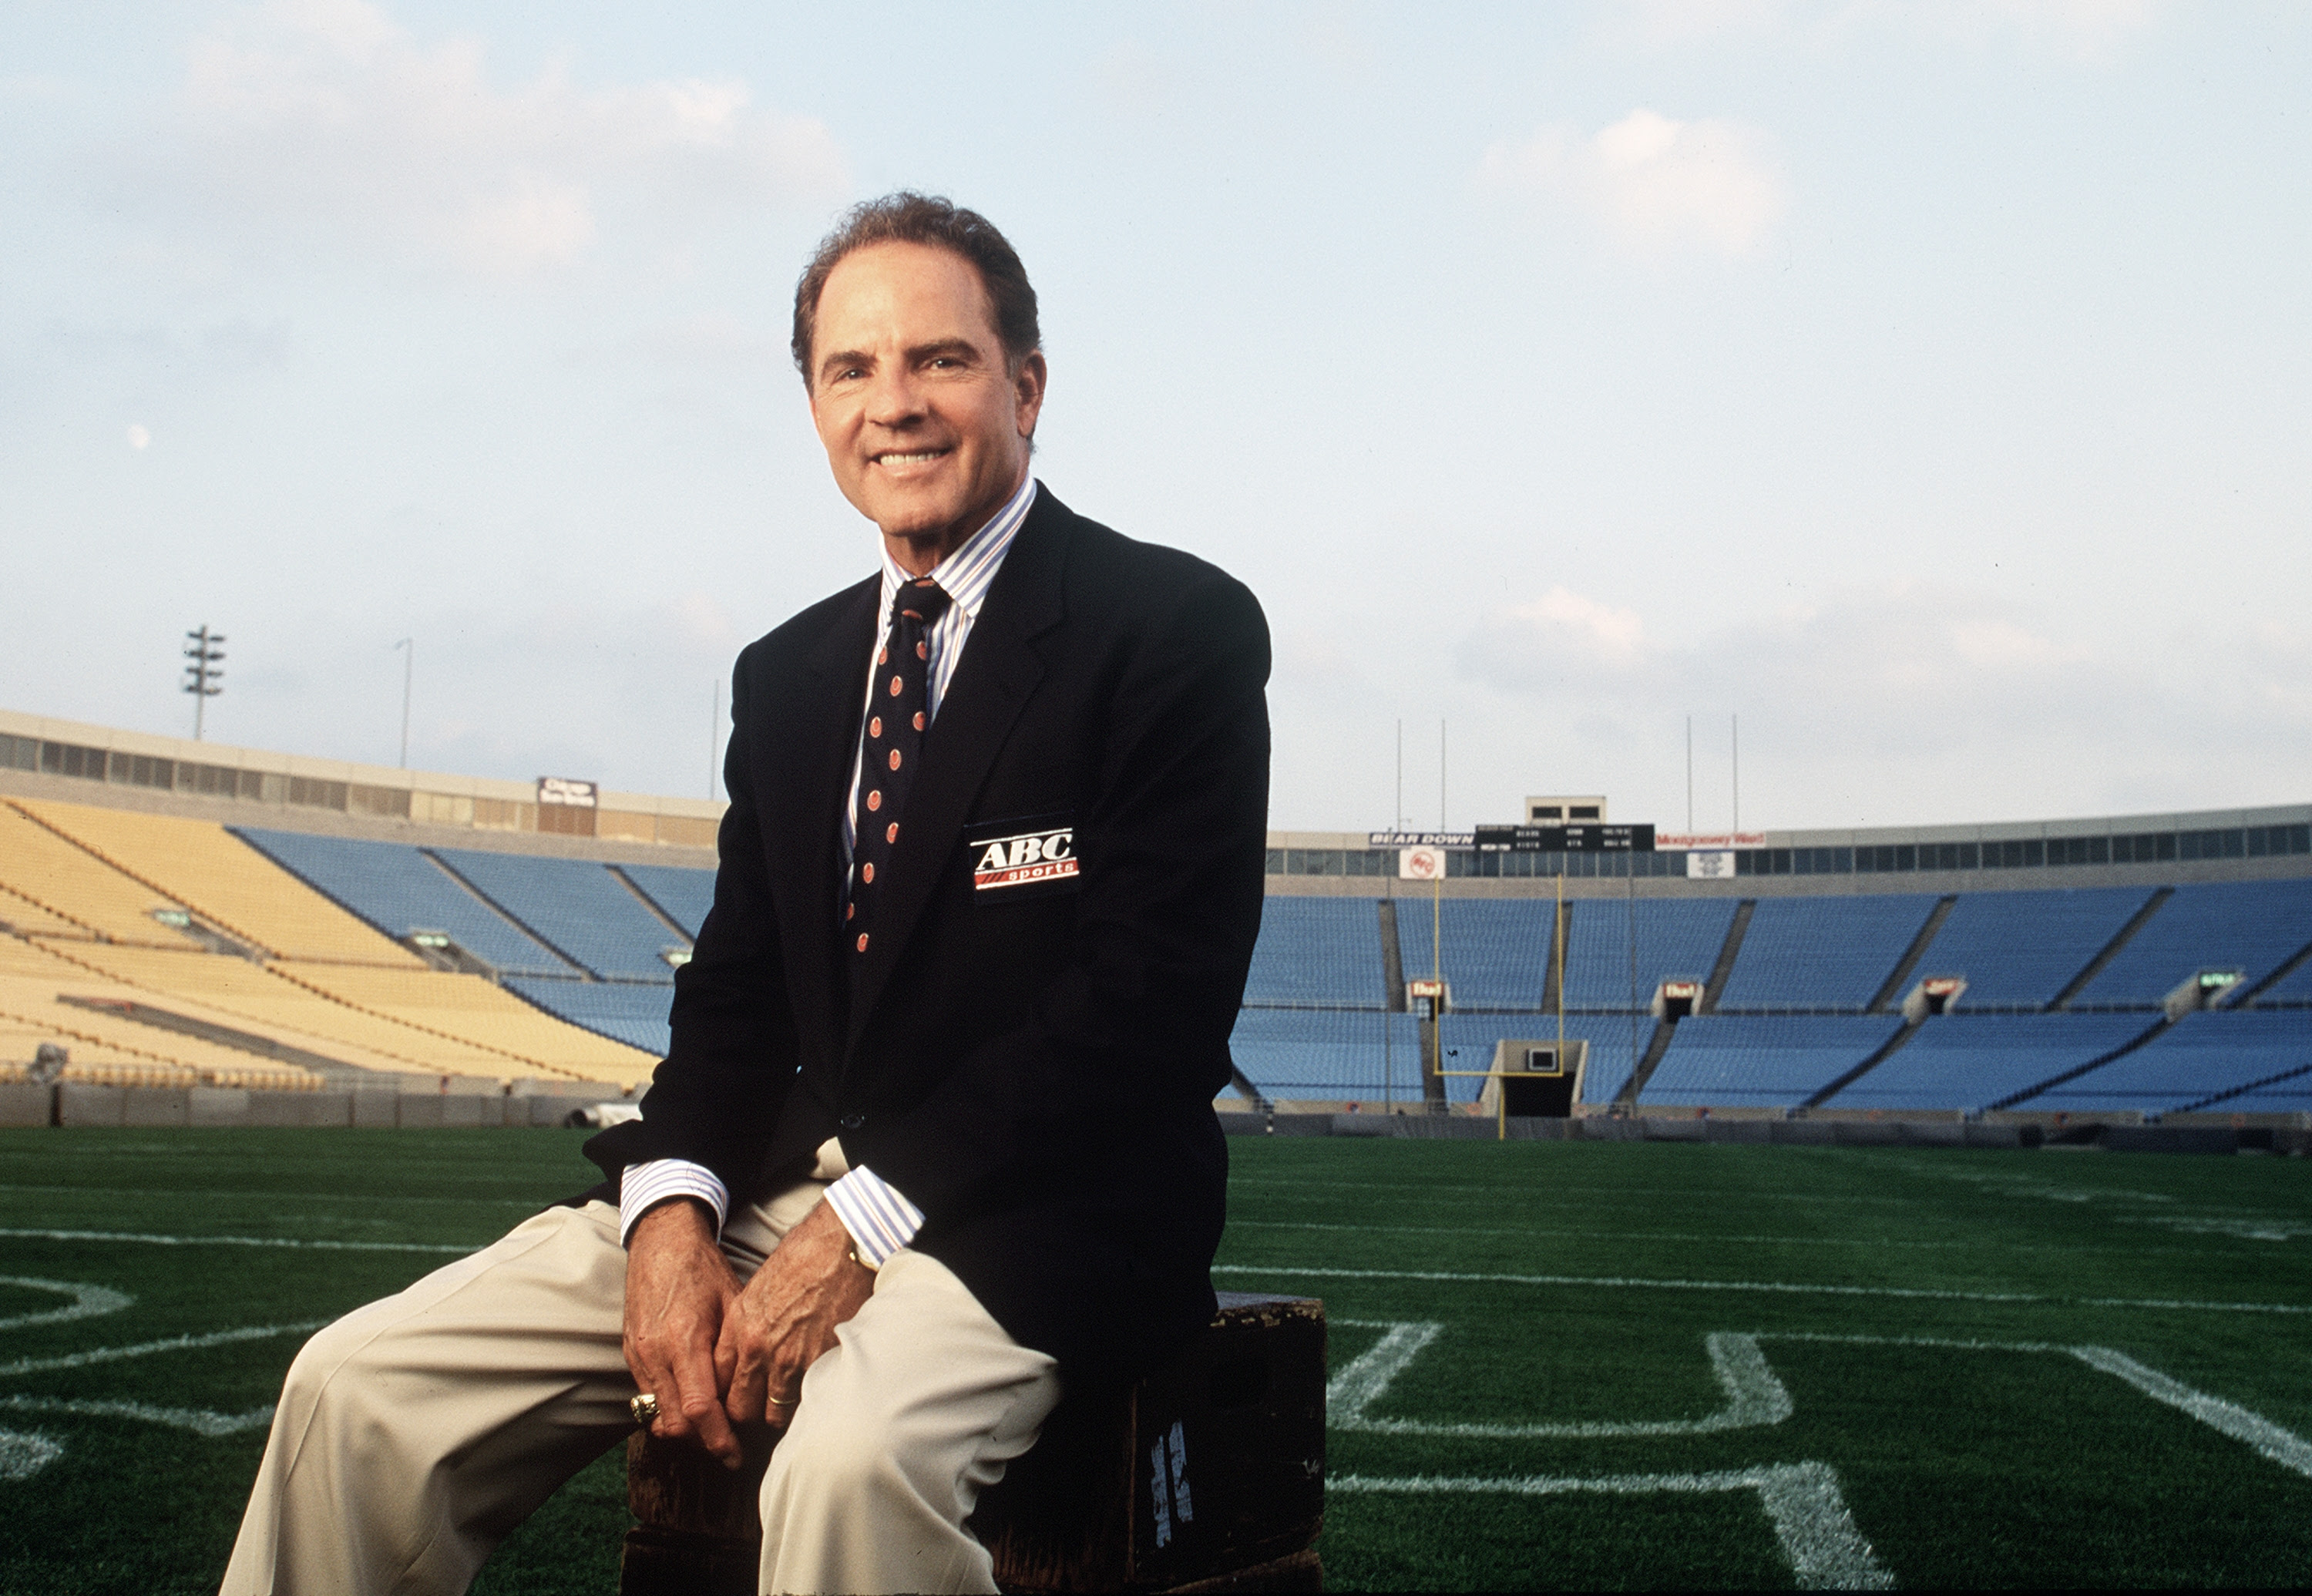 Legendary Abc Sports Commentator And Hall Of Famer Frank Gifford Dies At 84 Espn Front Row